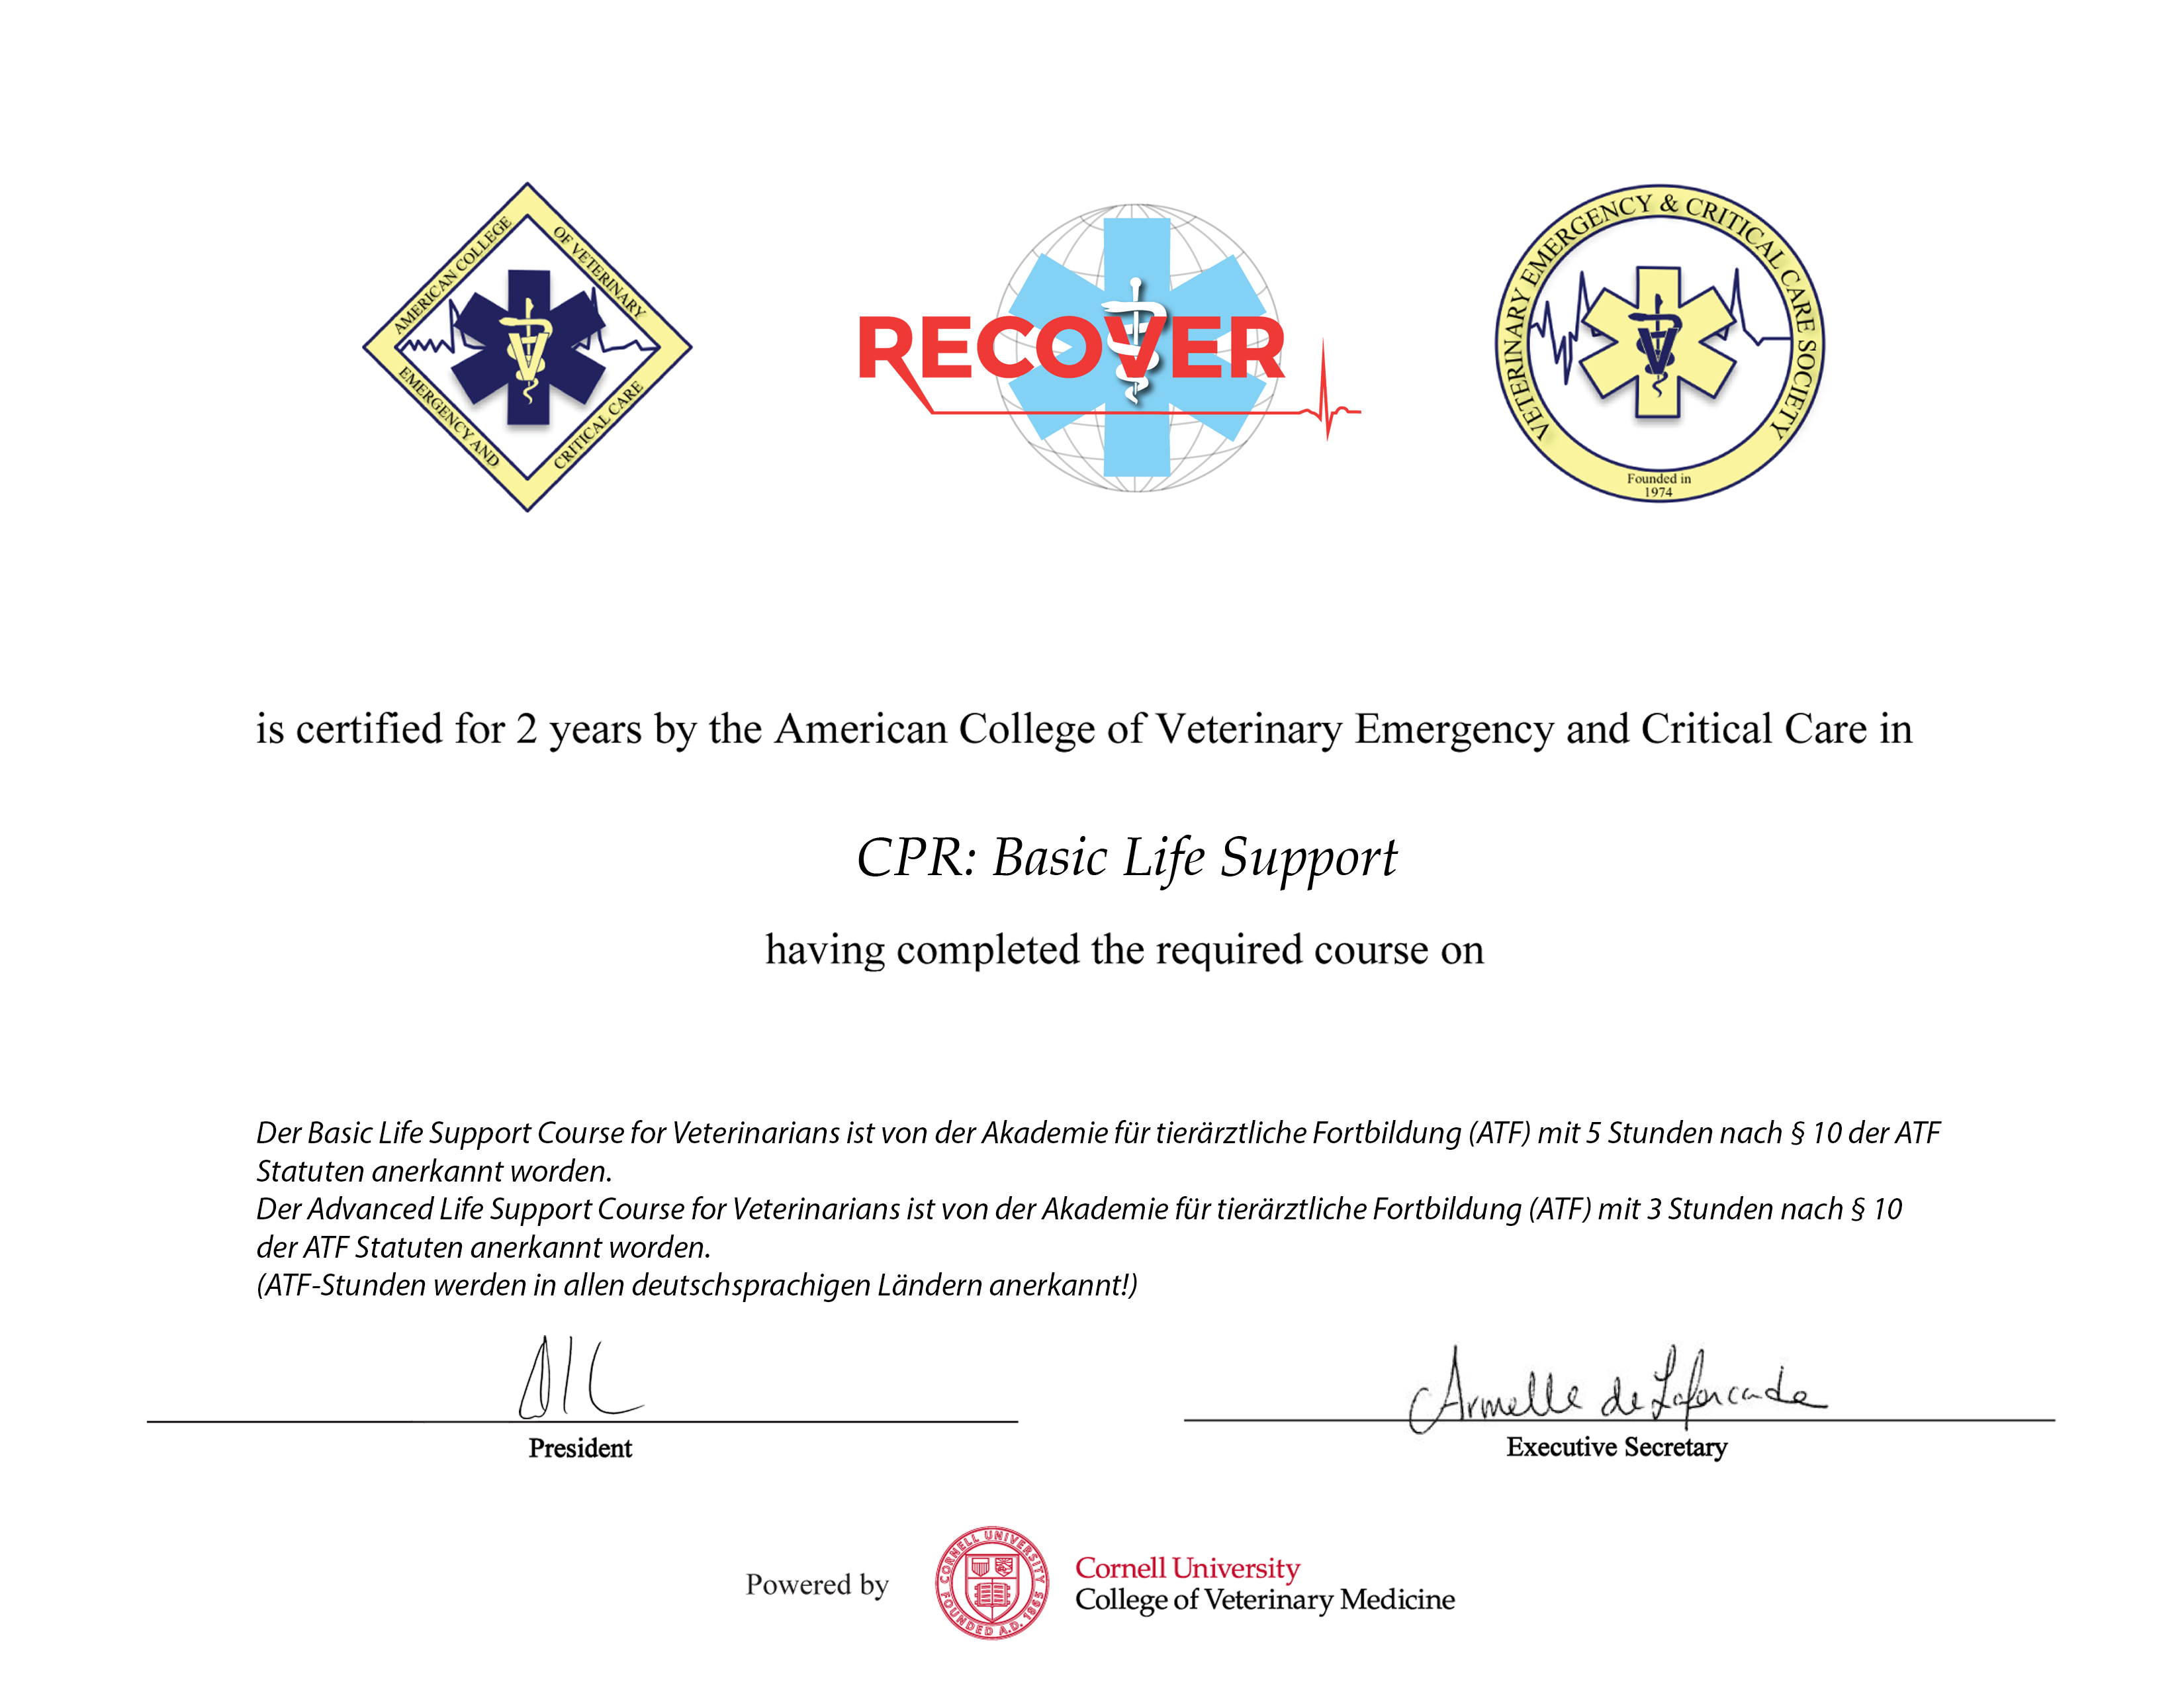 CPR: Basic Life Support (Germany ATF)